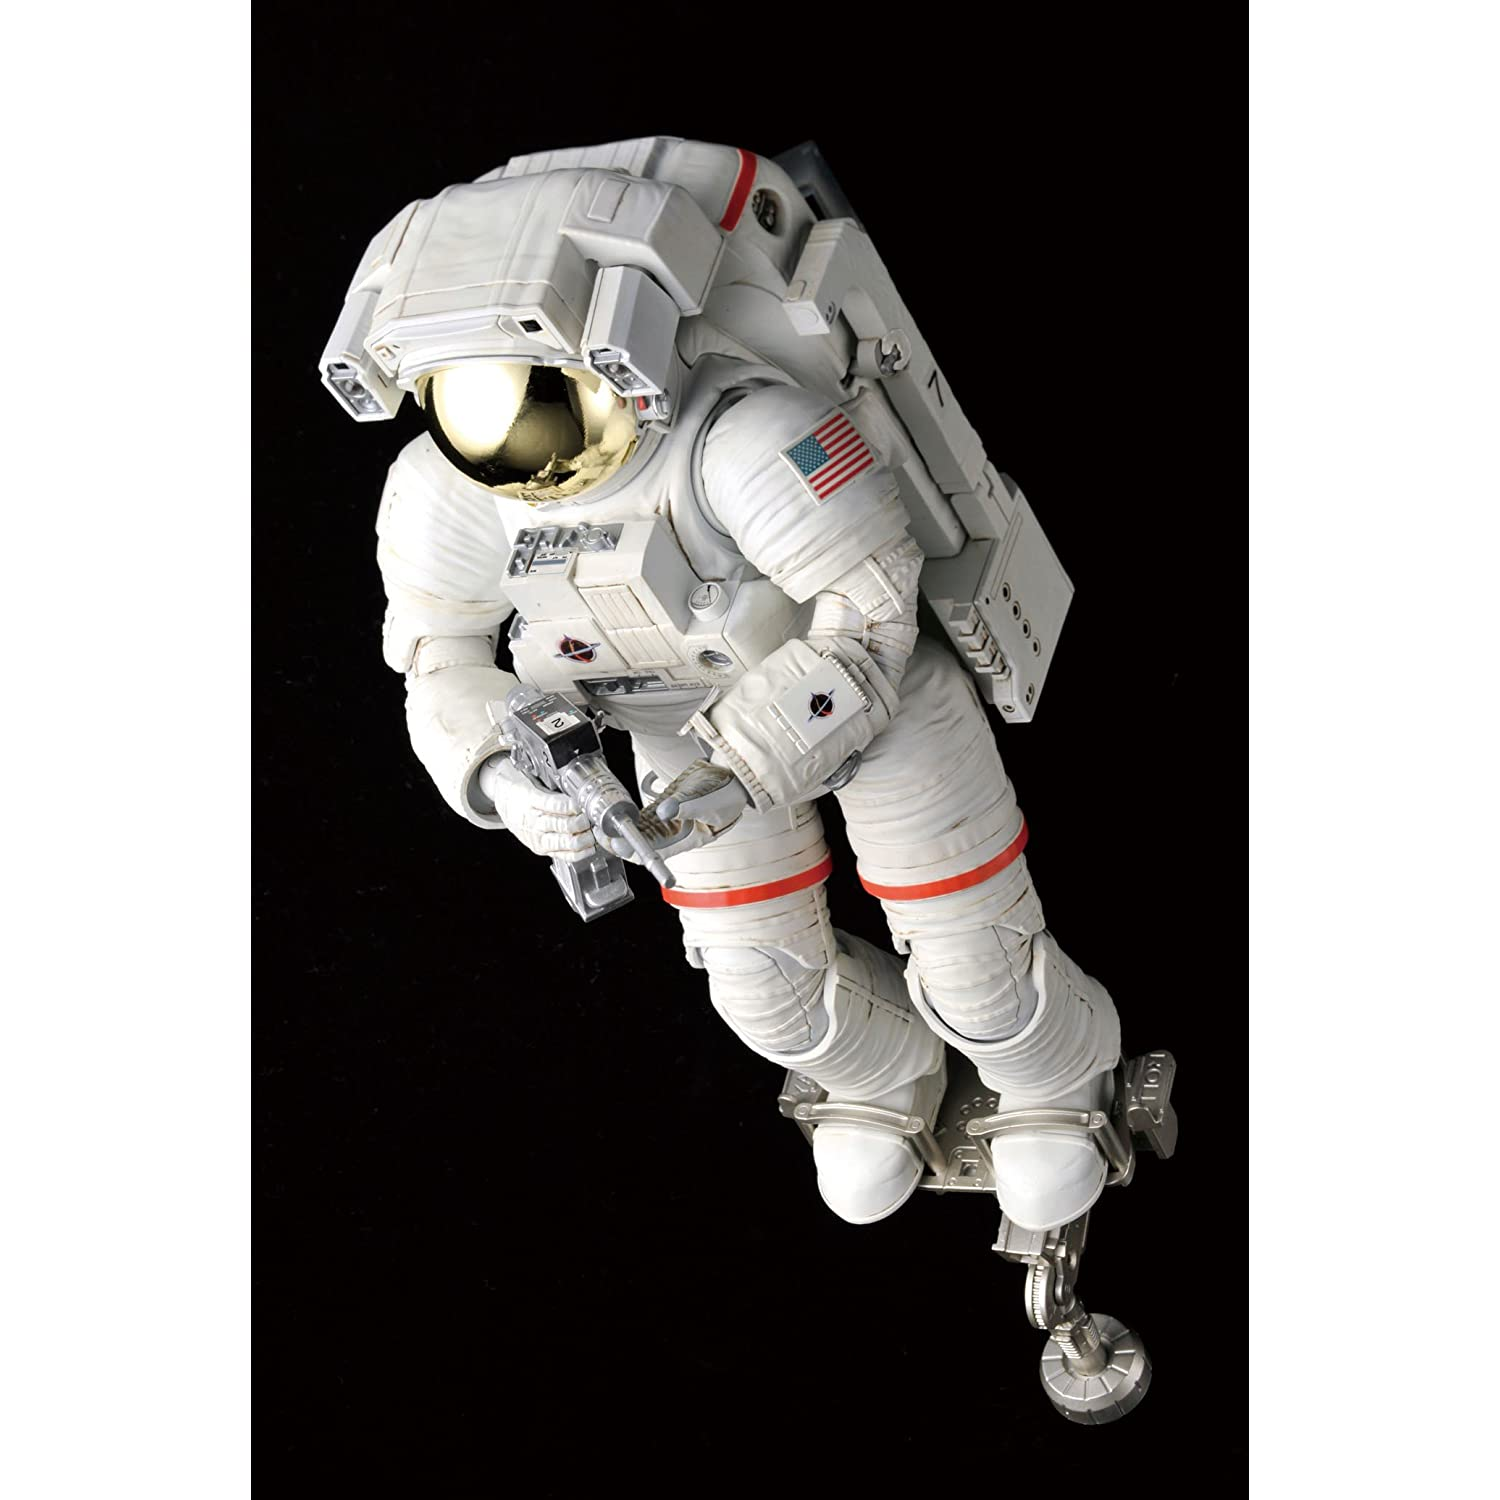 Bandai Hobby ISS Space Suit Extravehicular Mobility Unit 1/10 Exploring Lab 71iHA98yaWL._AA1500_